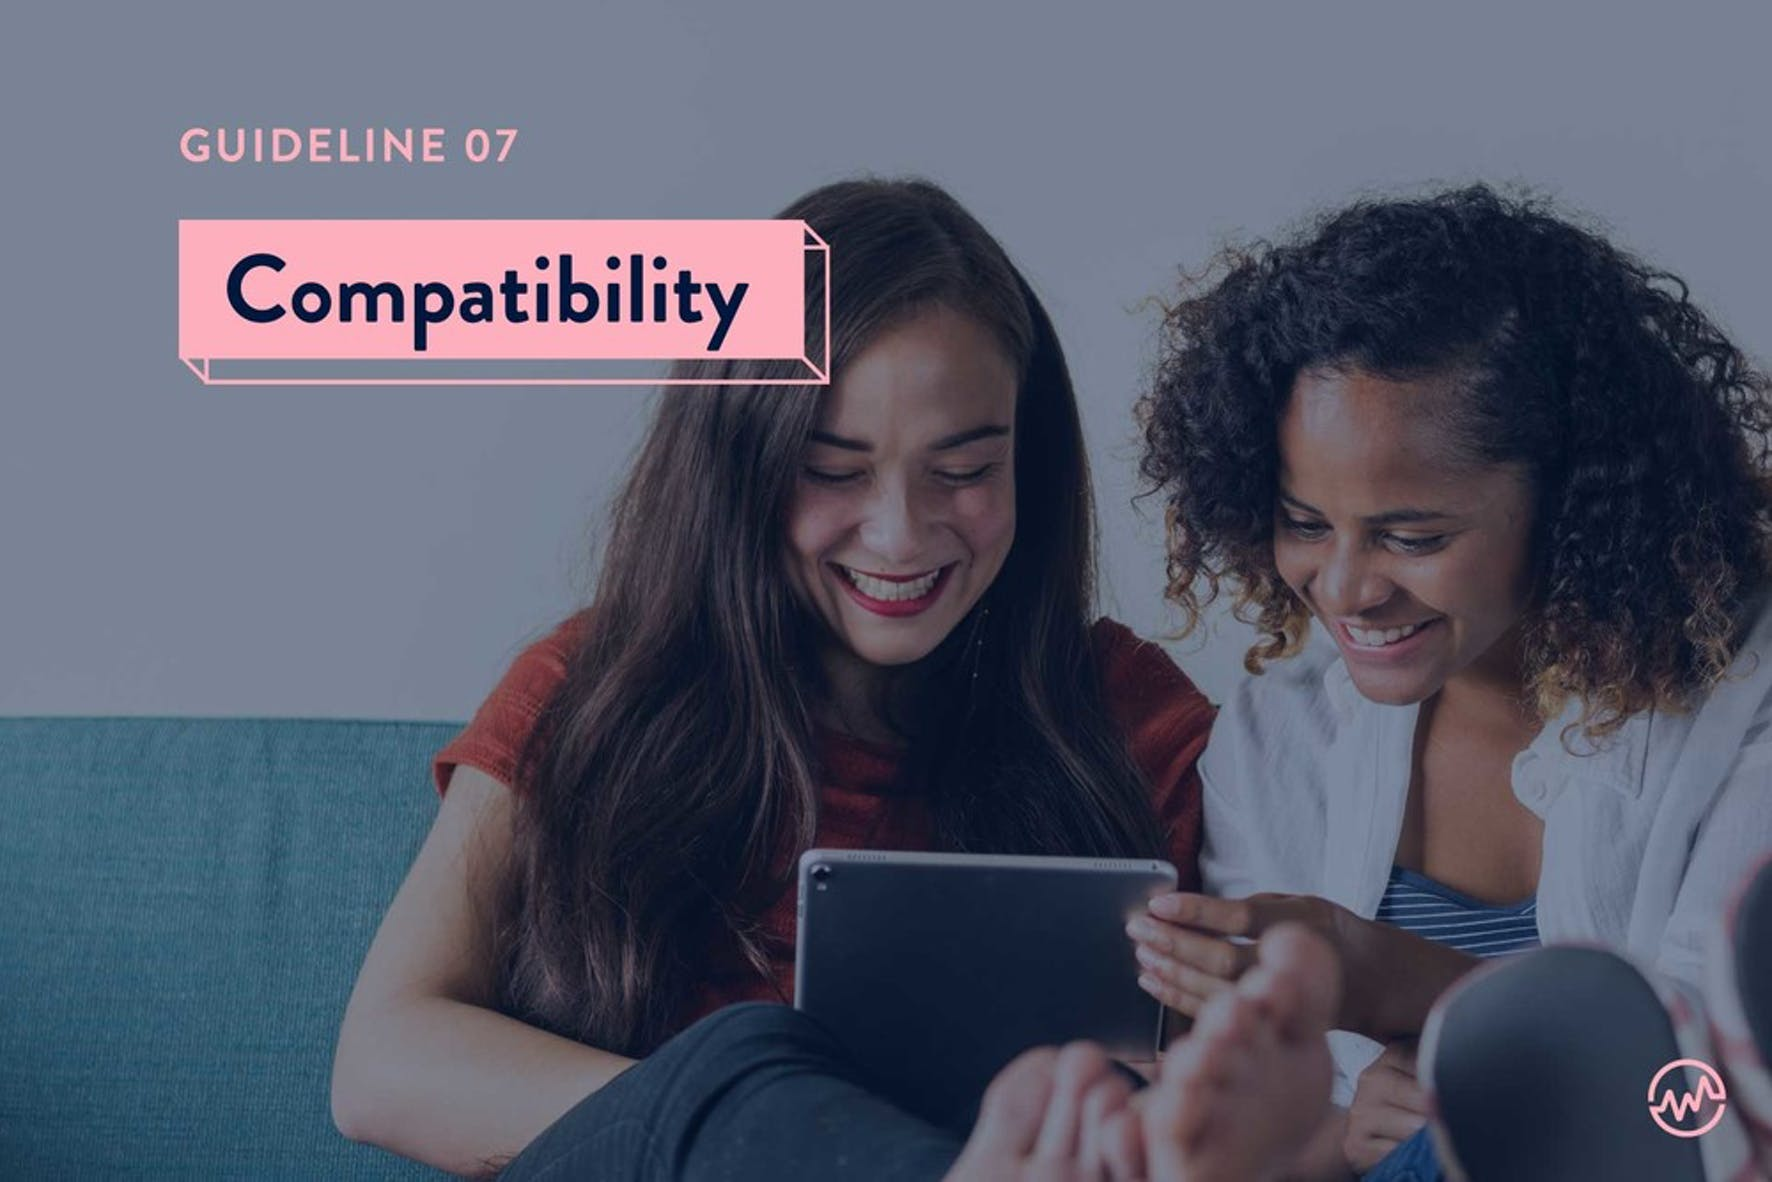 Two female friends looking at compatibility scores on an iPad who plan on buying a house together